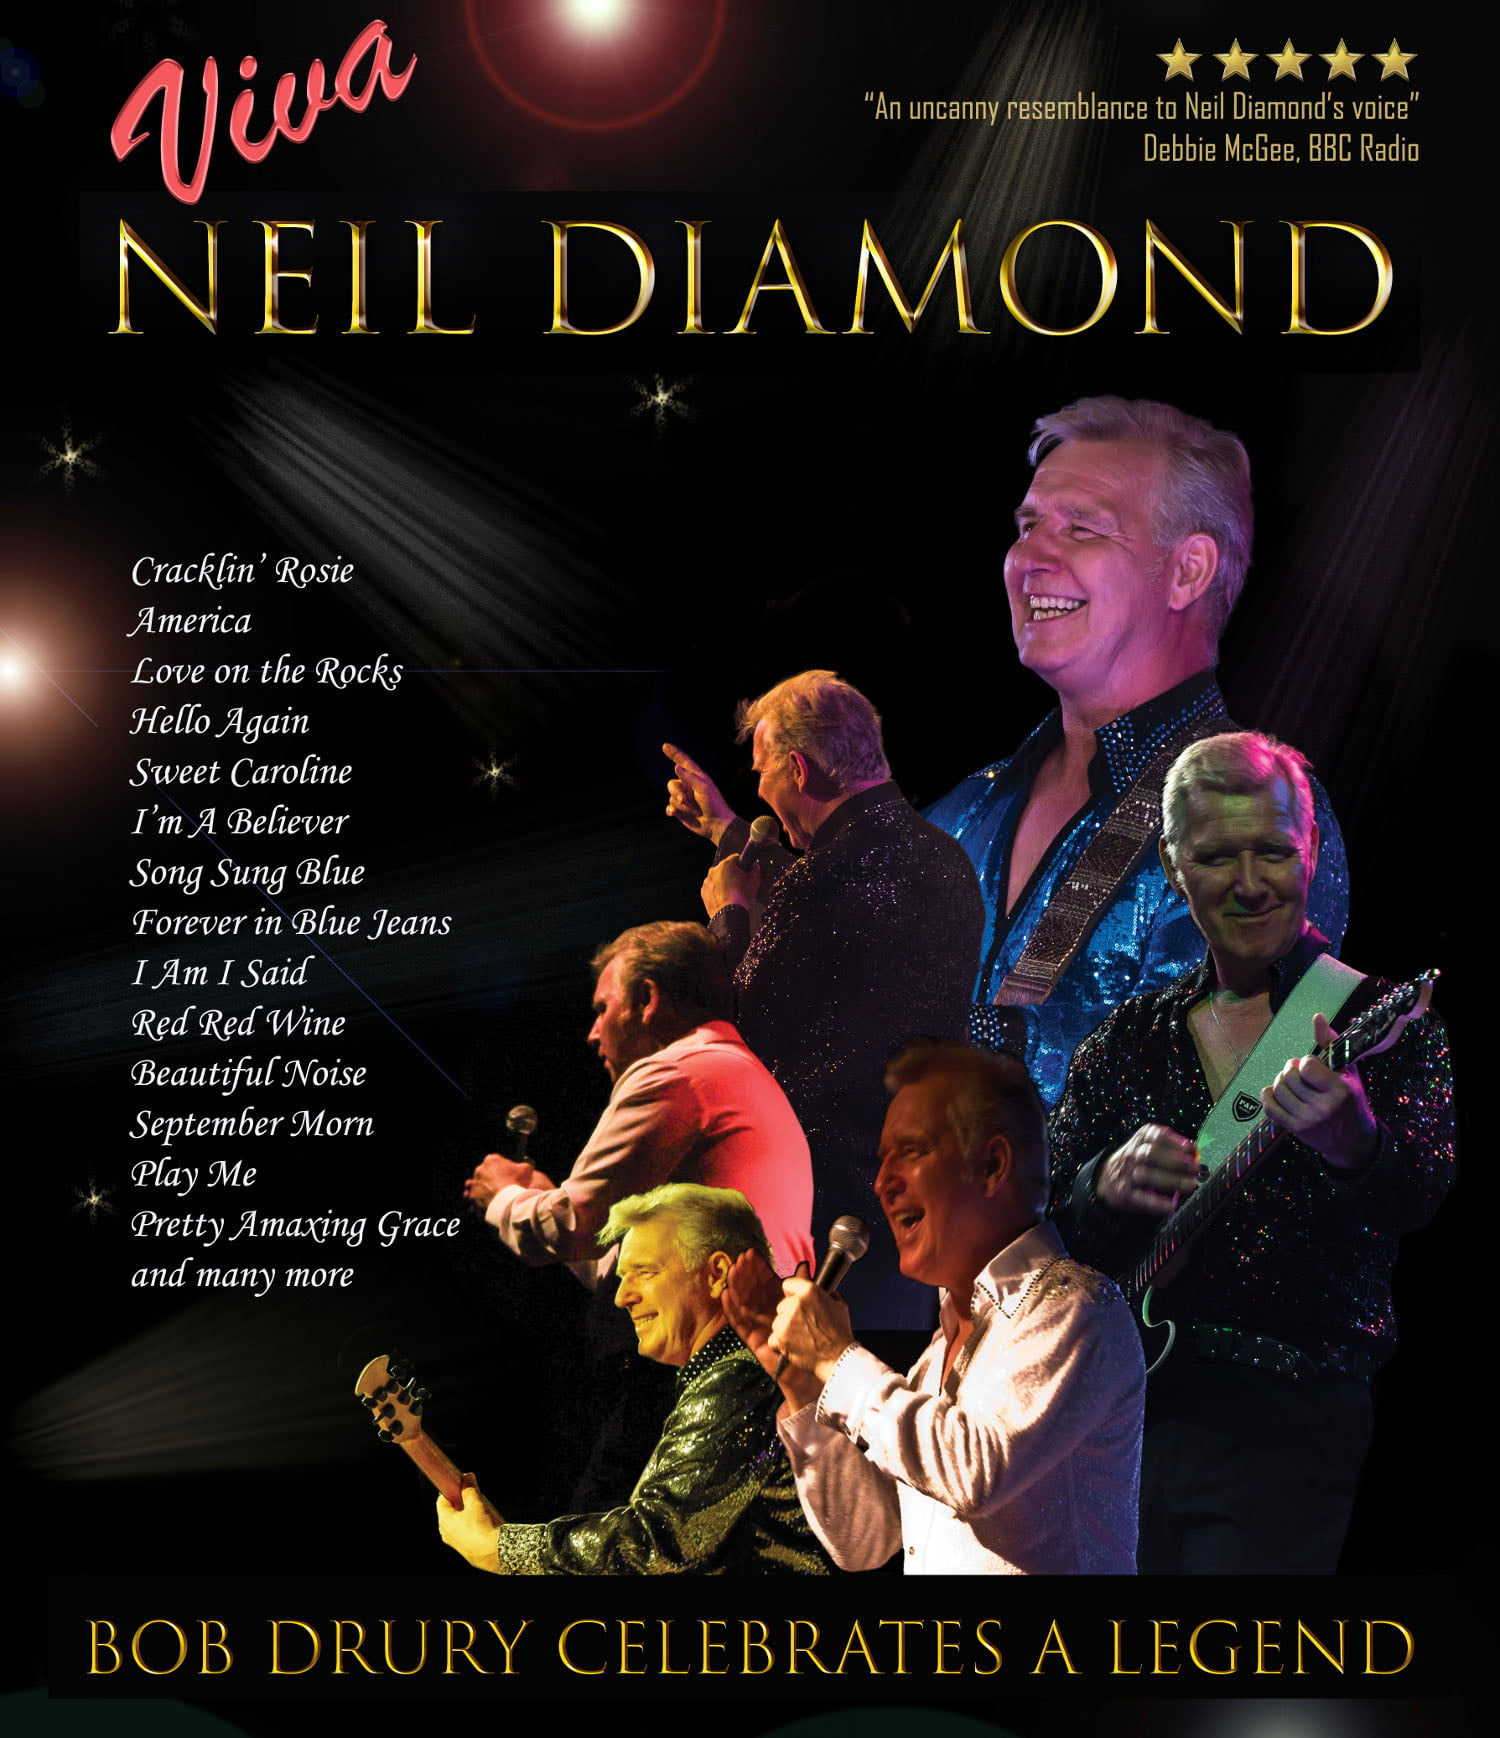 Viva Neil Diamond